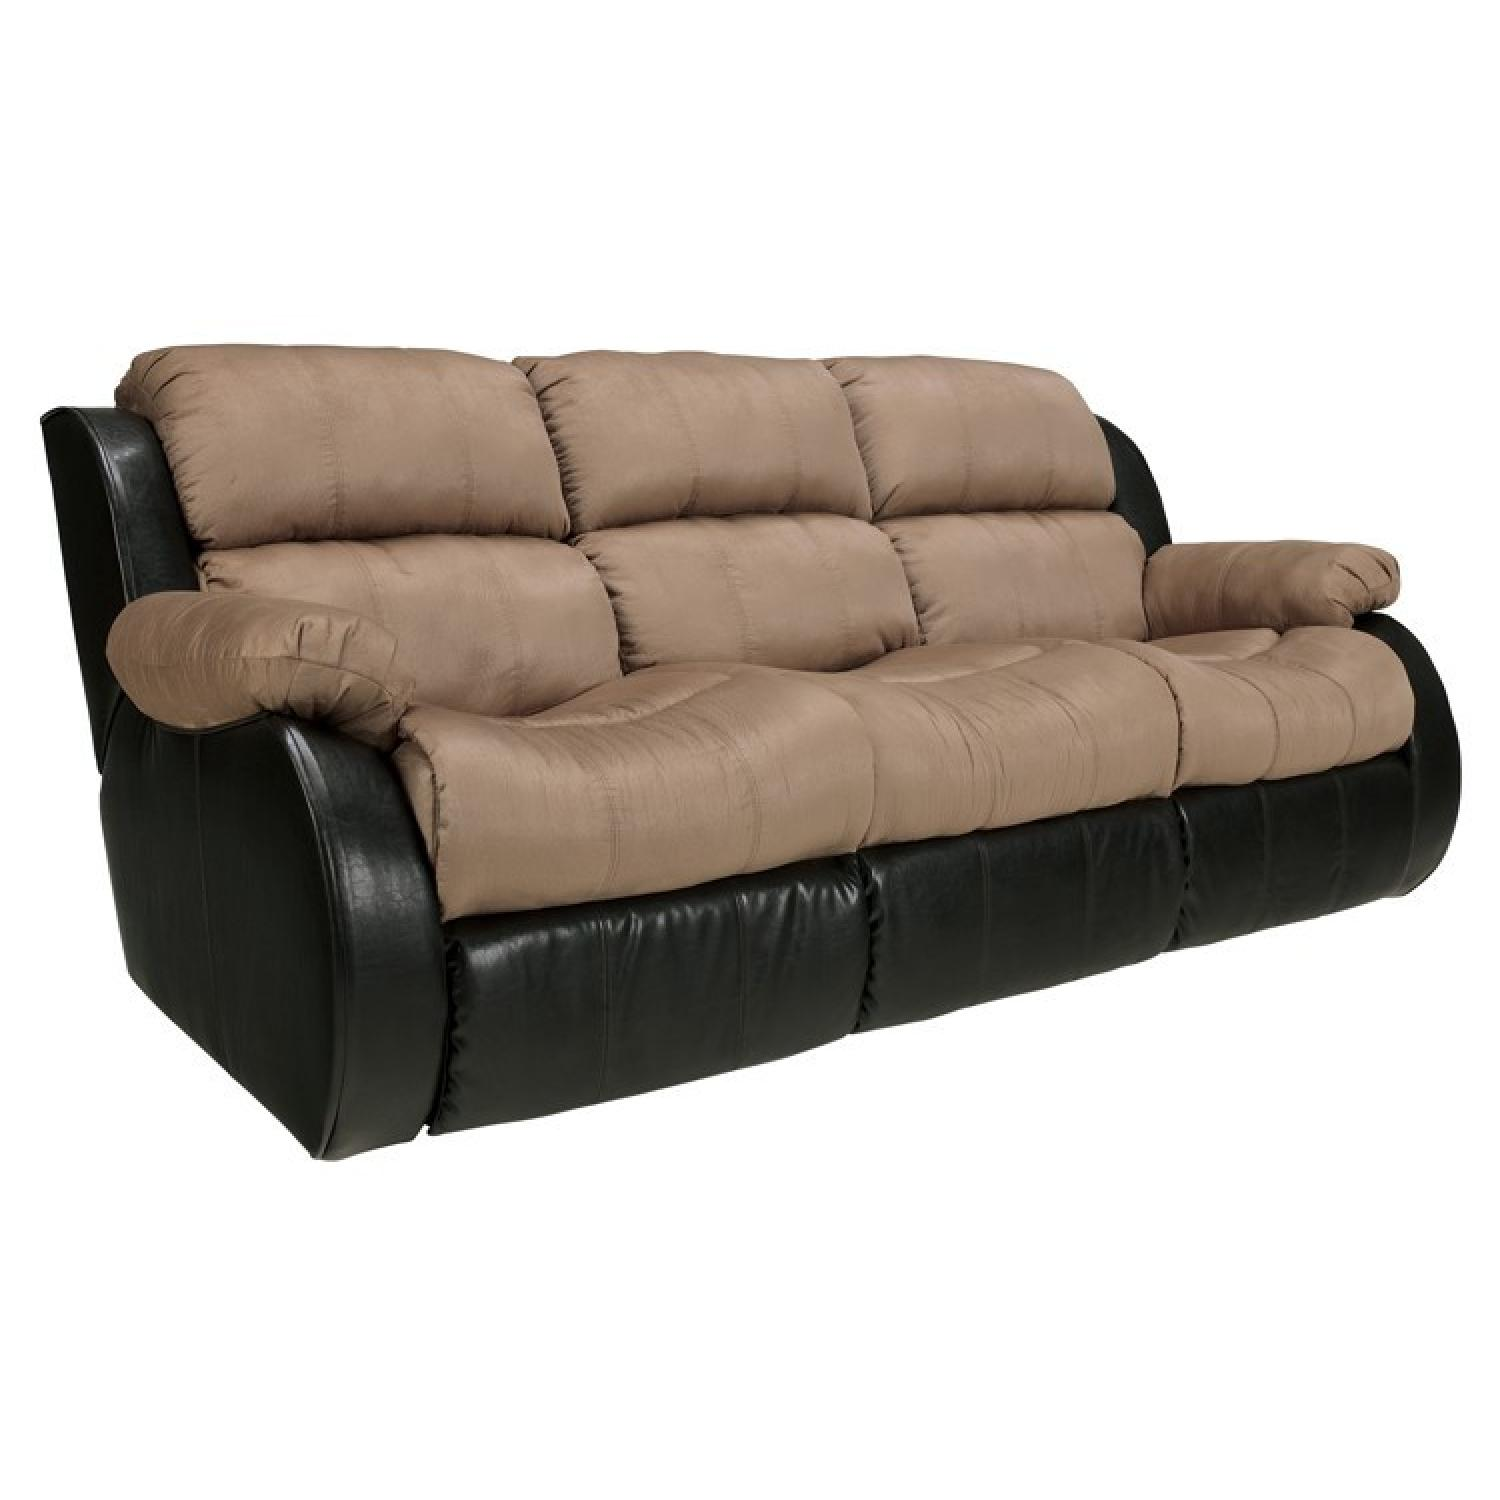 Ashley's Presley Dual Reclining Sofa in Cocoa - image-5